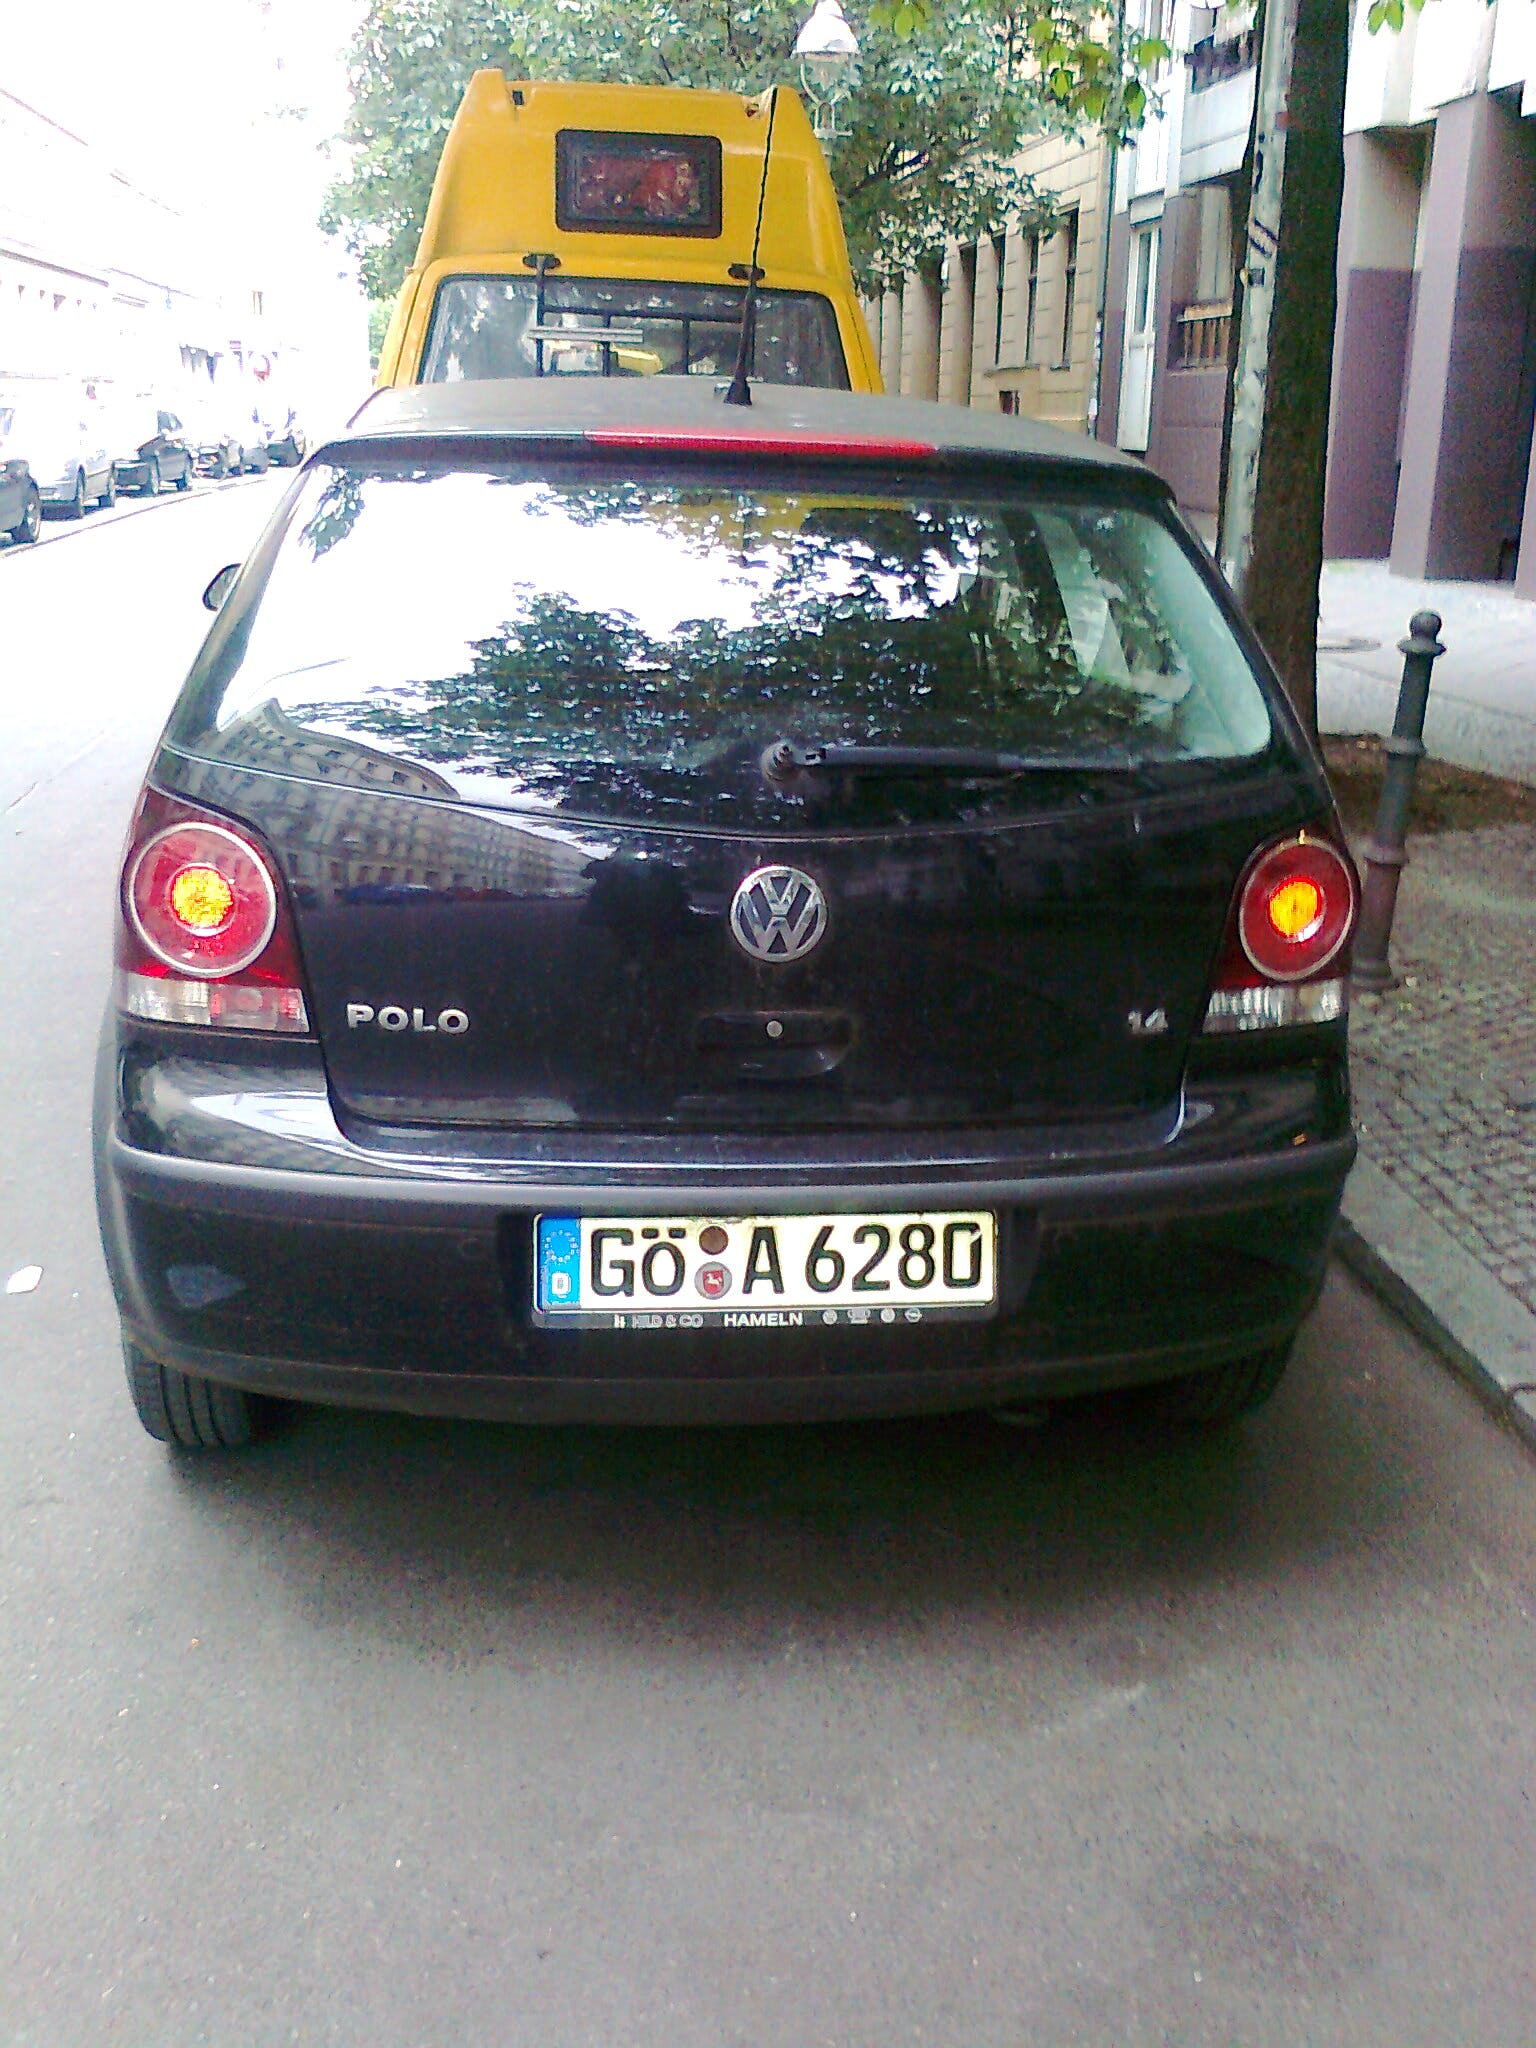 VW POLO mit CD-Player